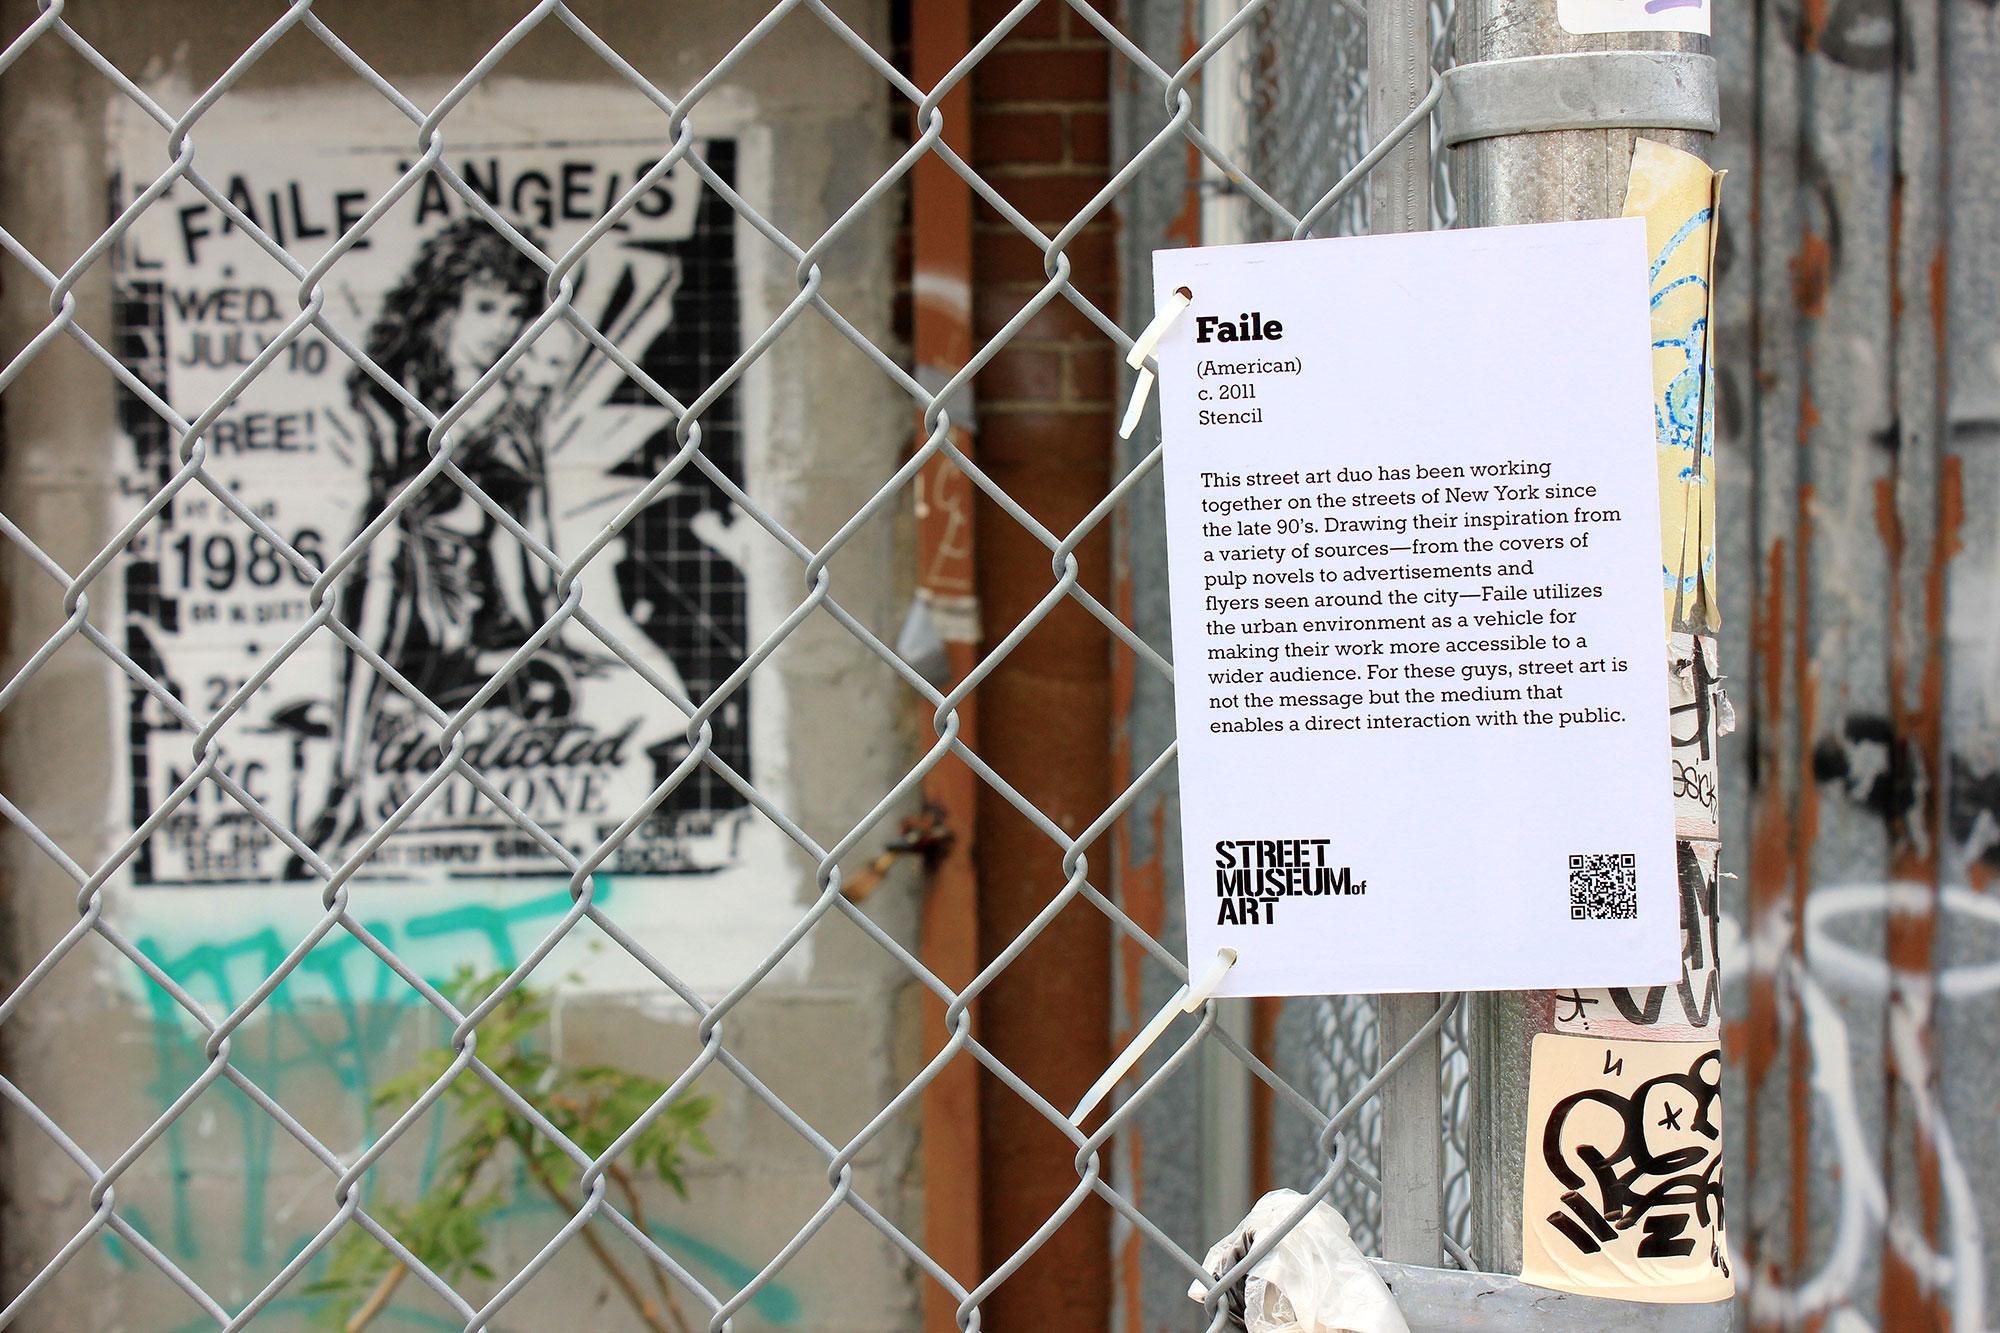 IMG_1550_Faile_Wburg_2012_LABEL-WEB.jpg